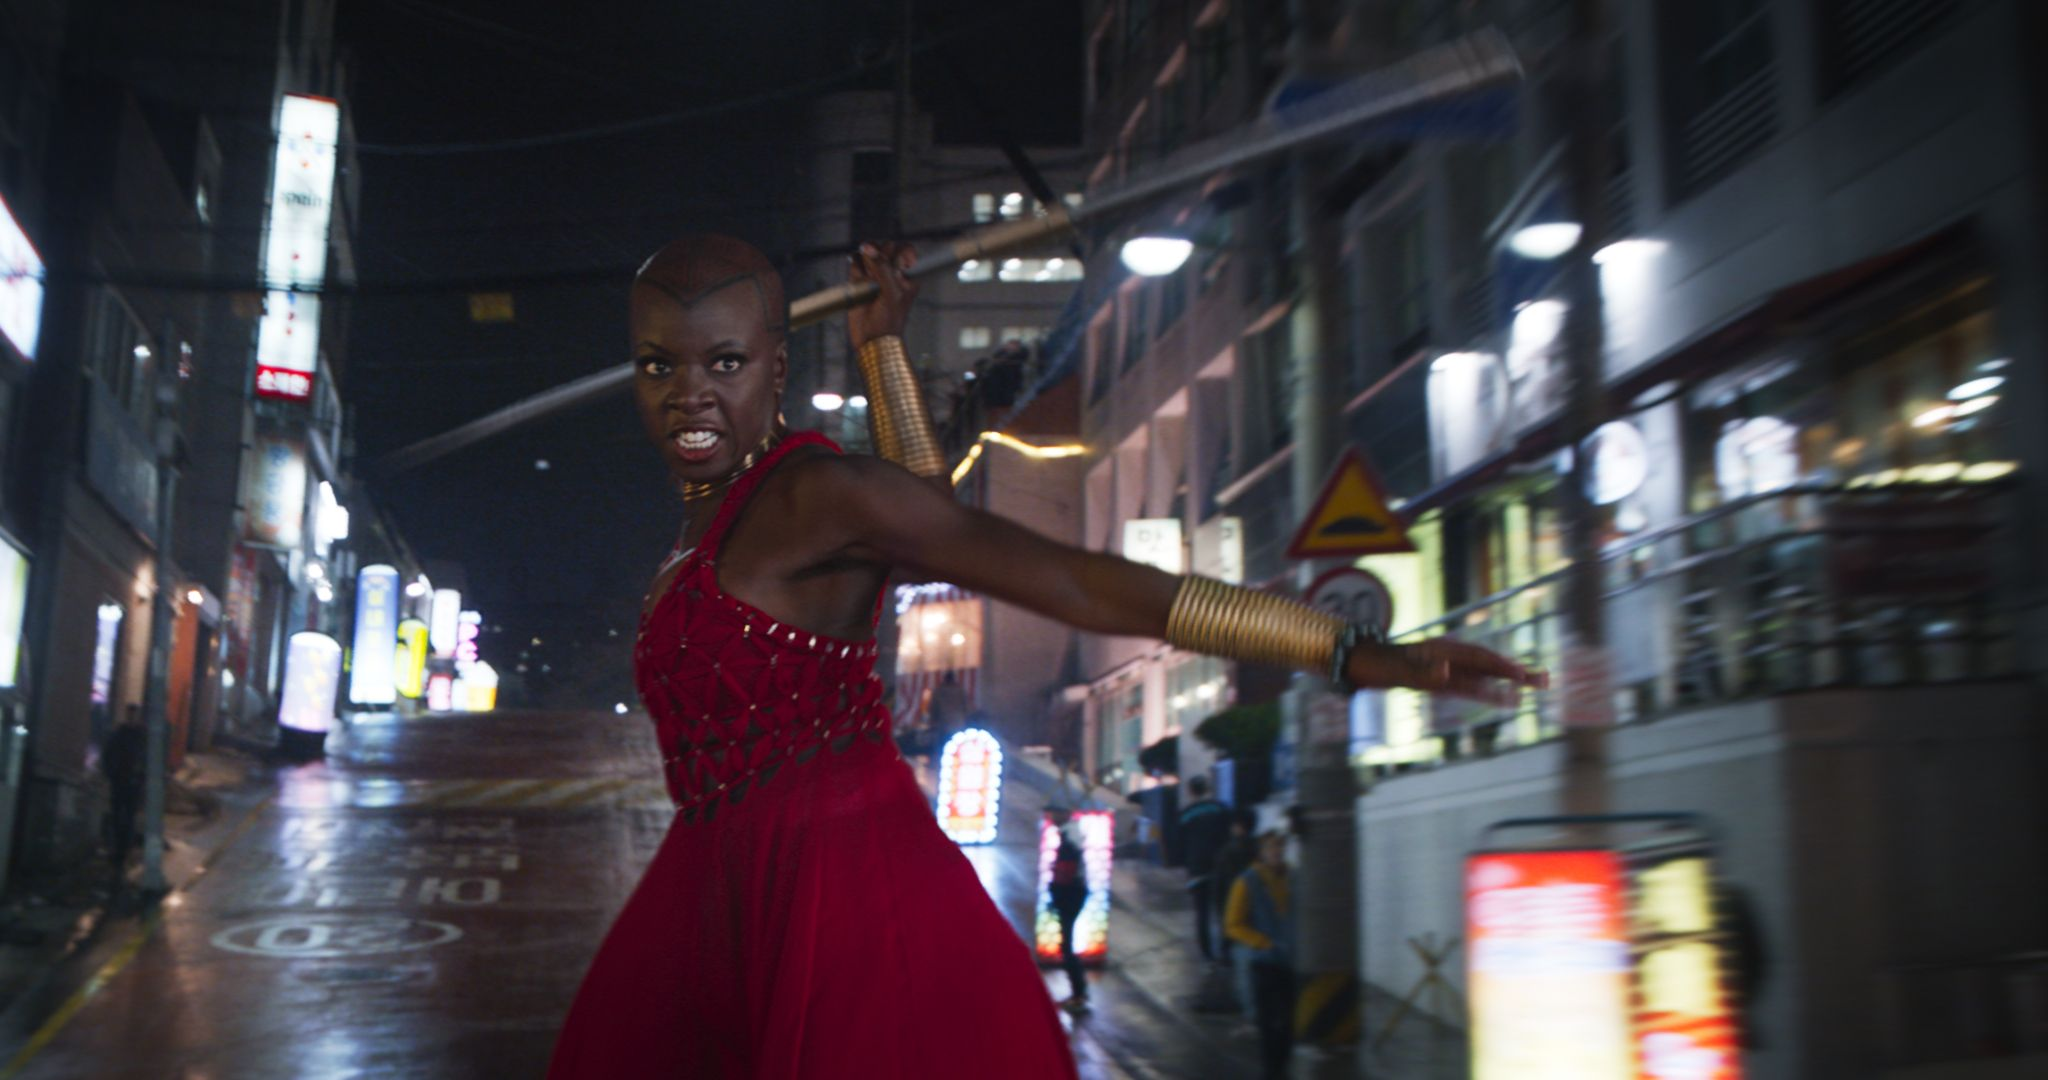 Movie Poster 2019: Black Panther Deleted Scene Puts Okoye In The Spotlight